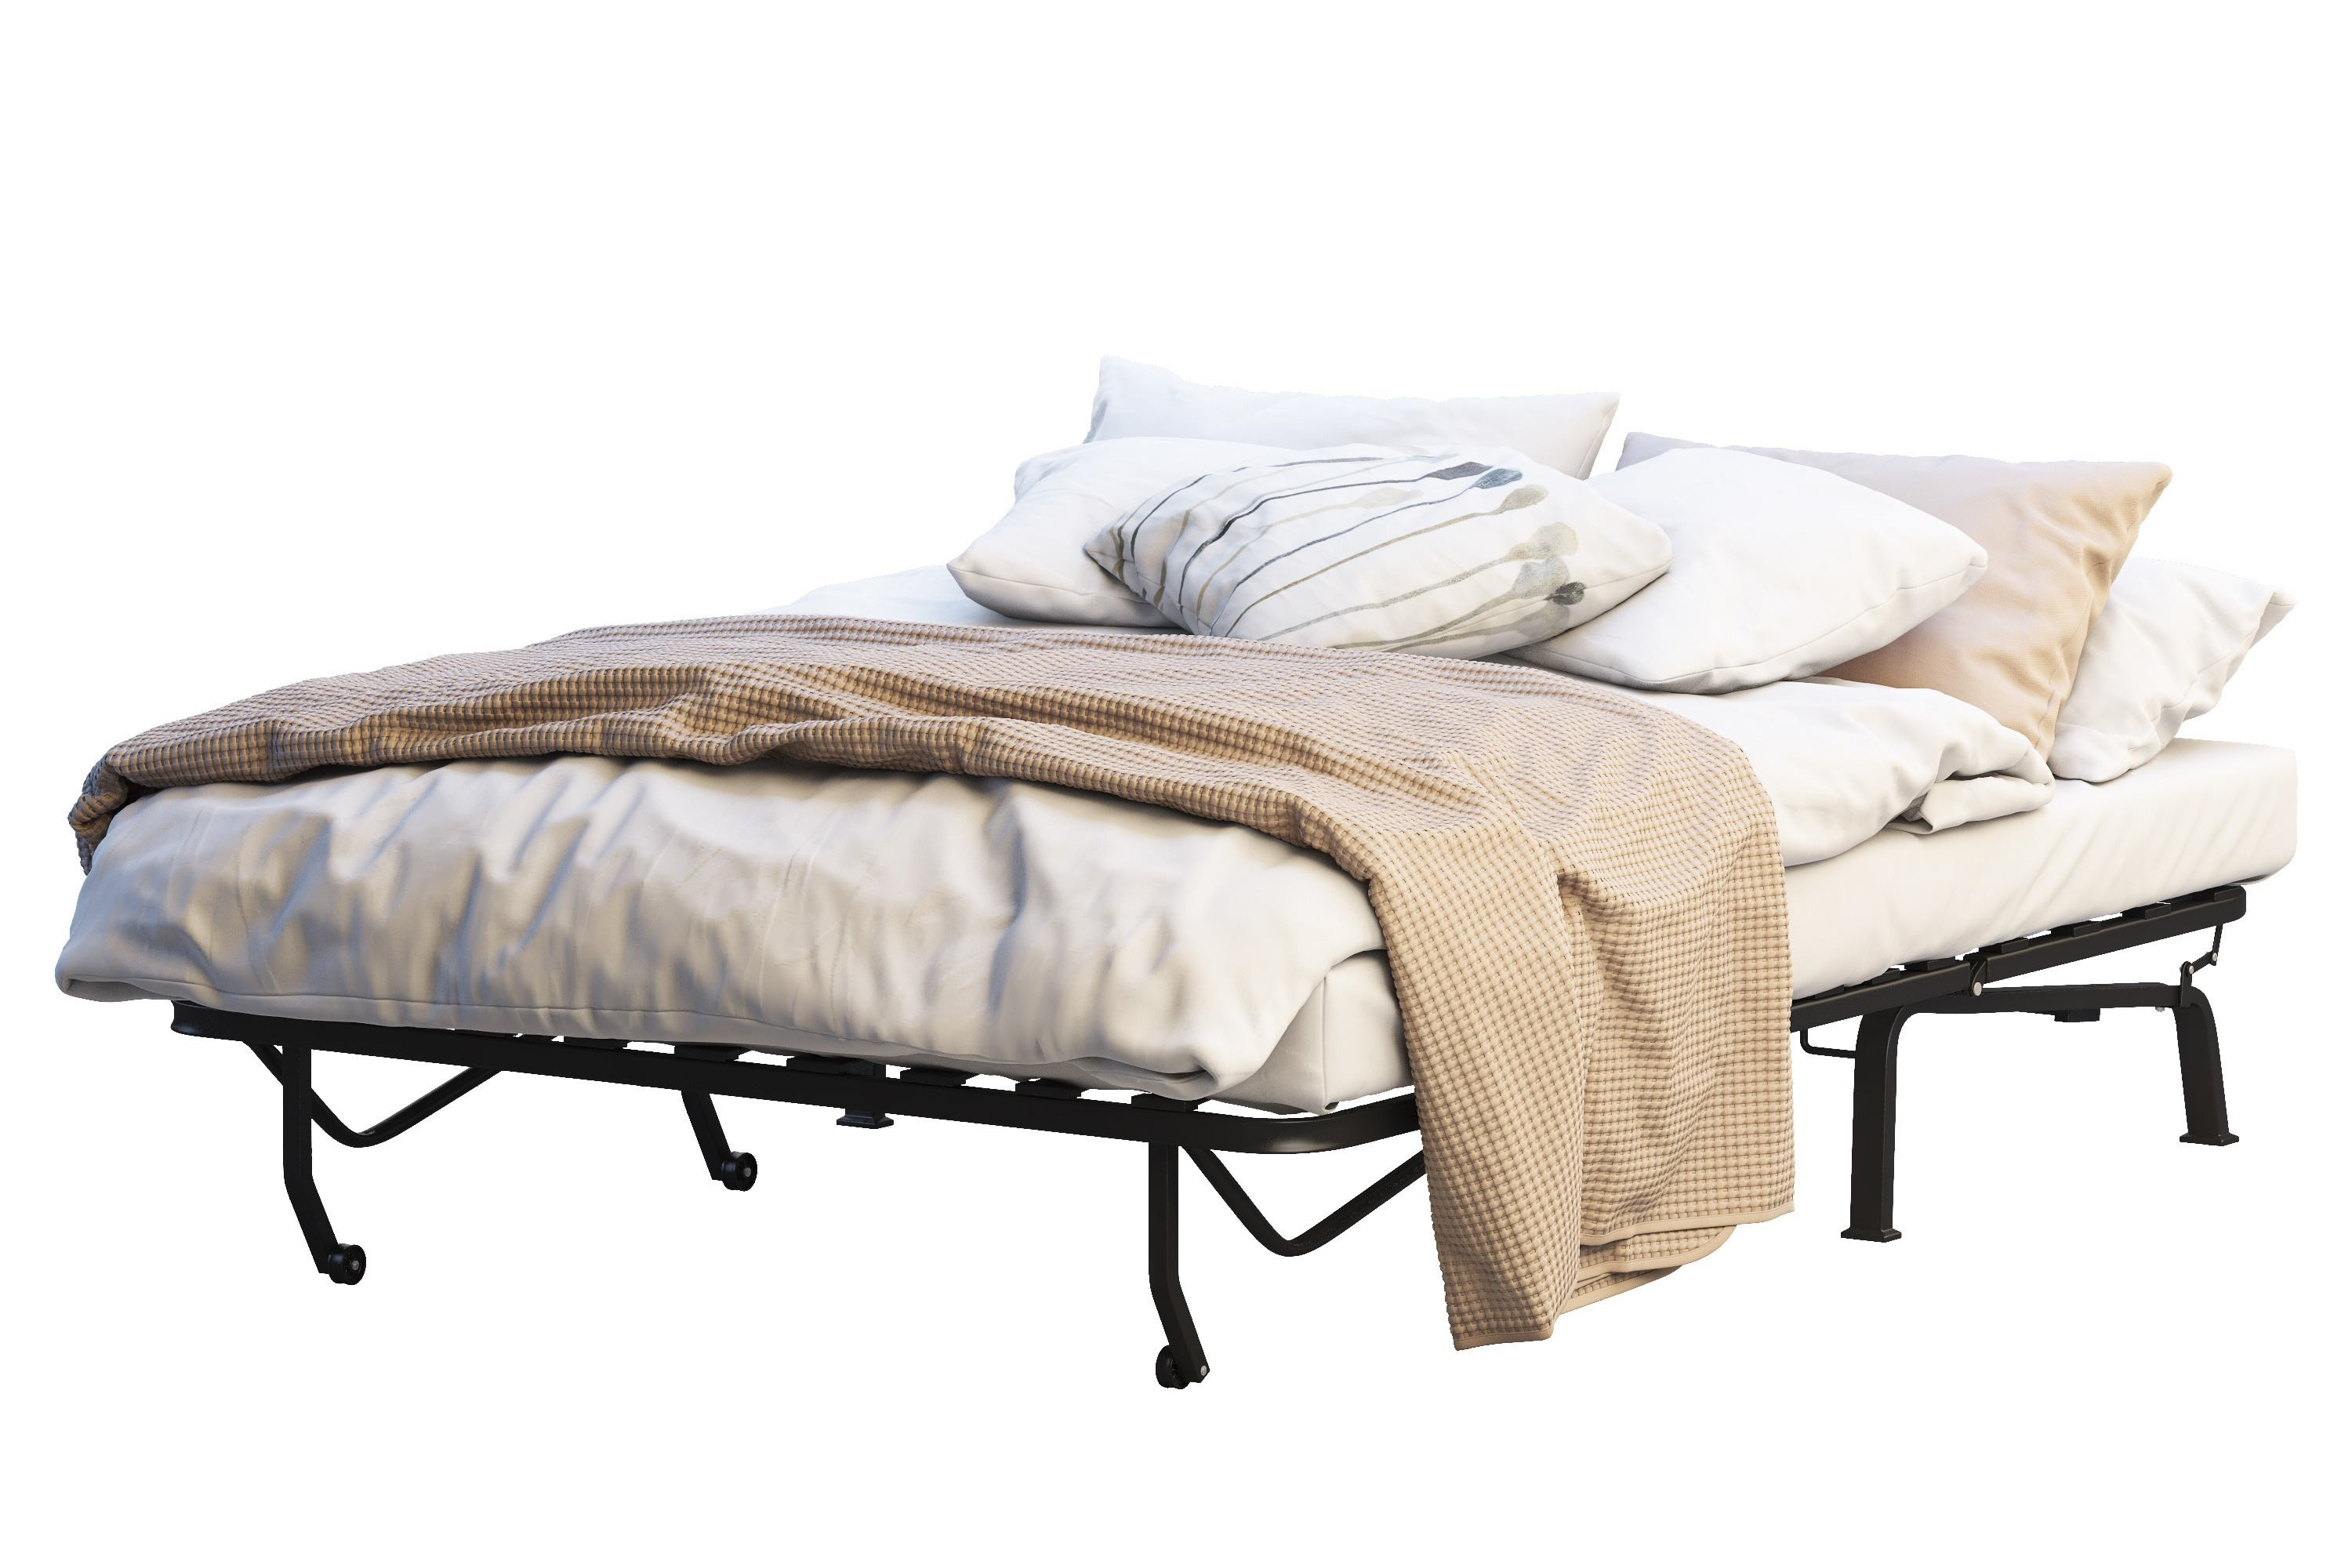 Minimalistic portable bed with linen